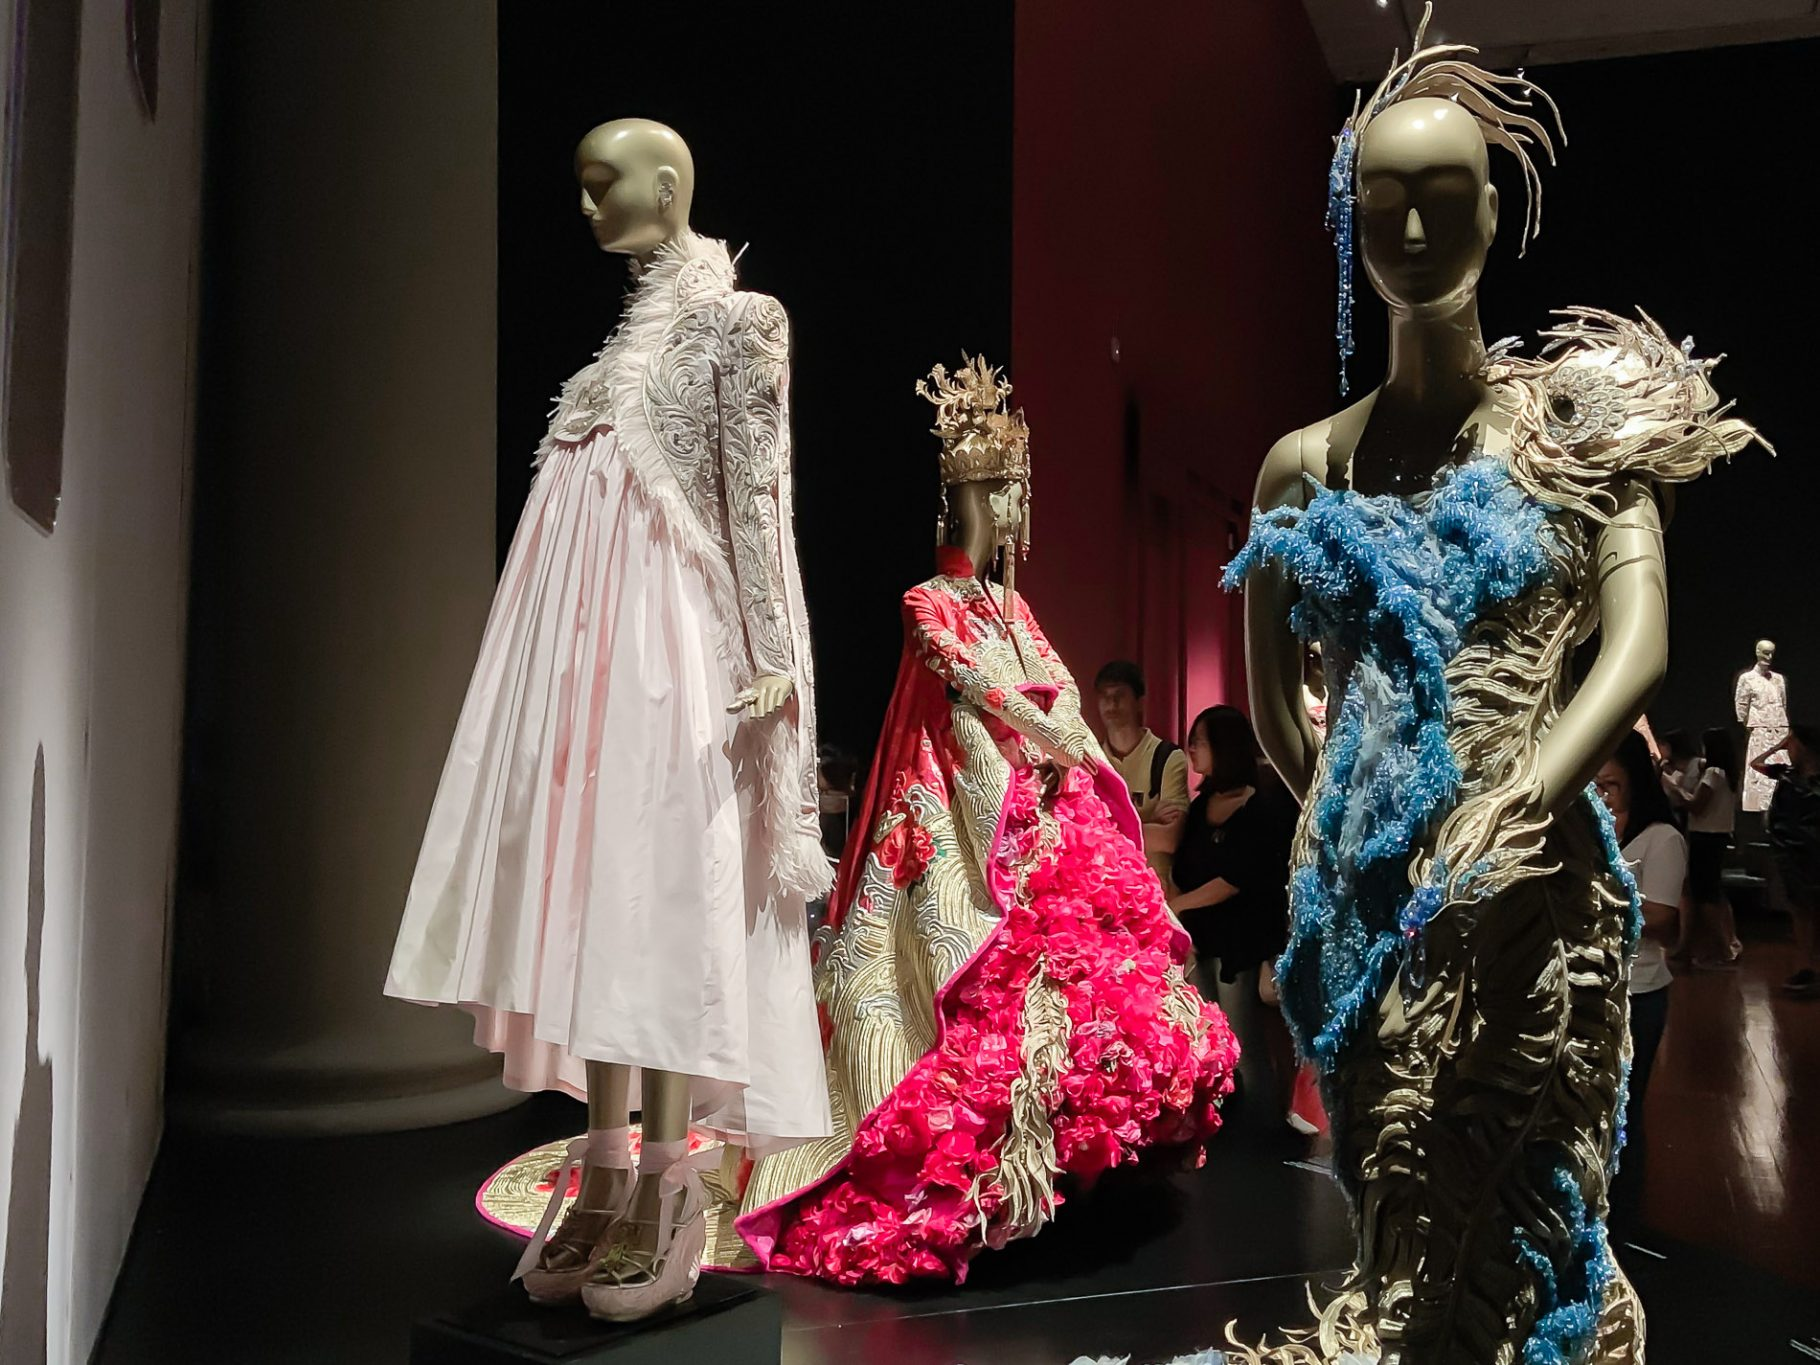 Guo Pei: Chinese Art and Couture Exhibition at Singapore's Asian Civilisations Museum